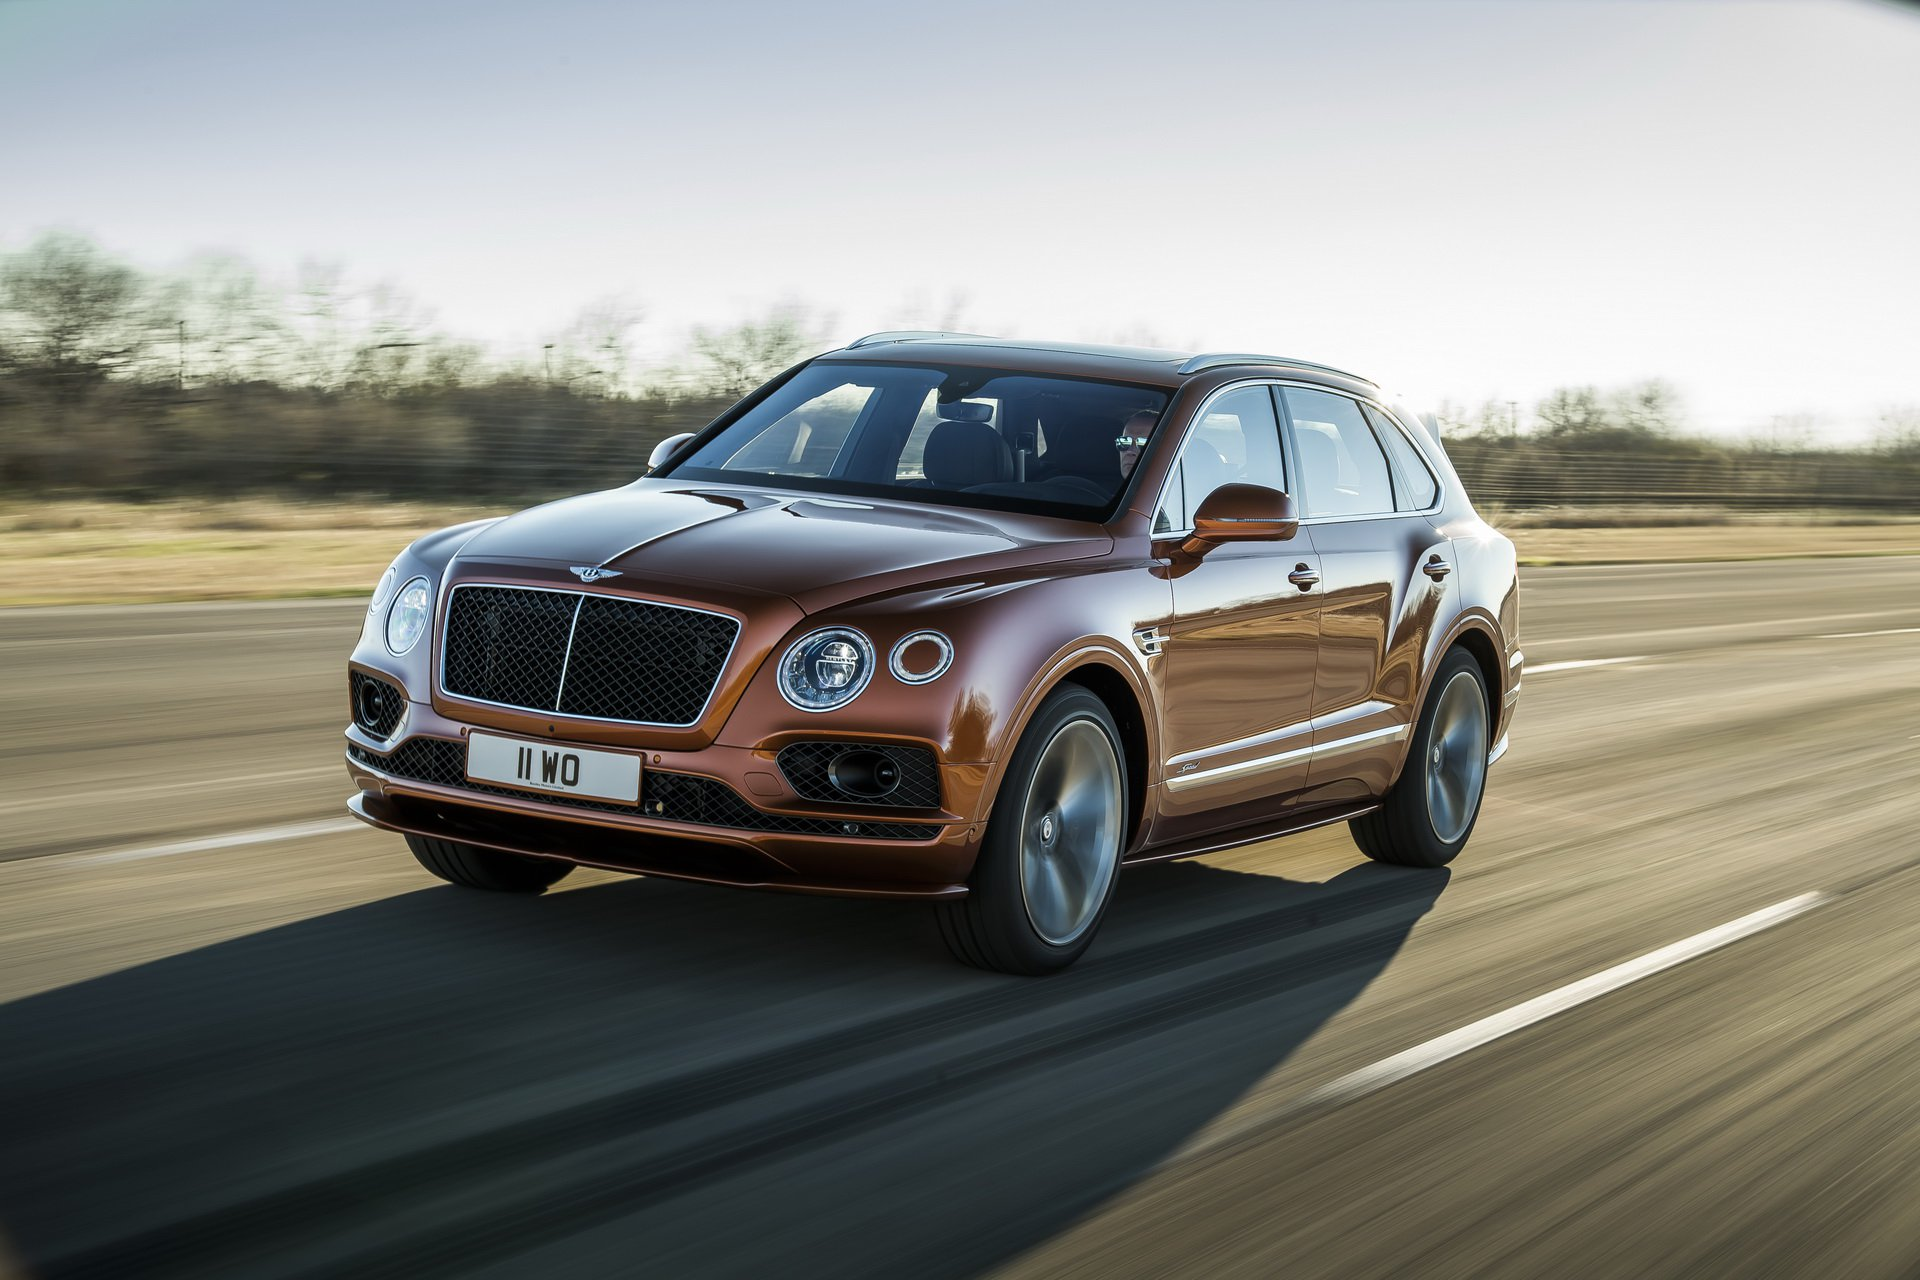 bentley-bentayga-speed-03.jpg